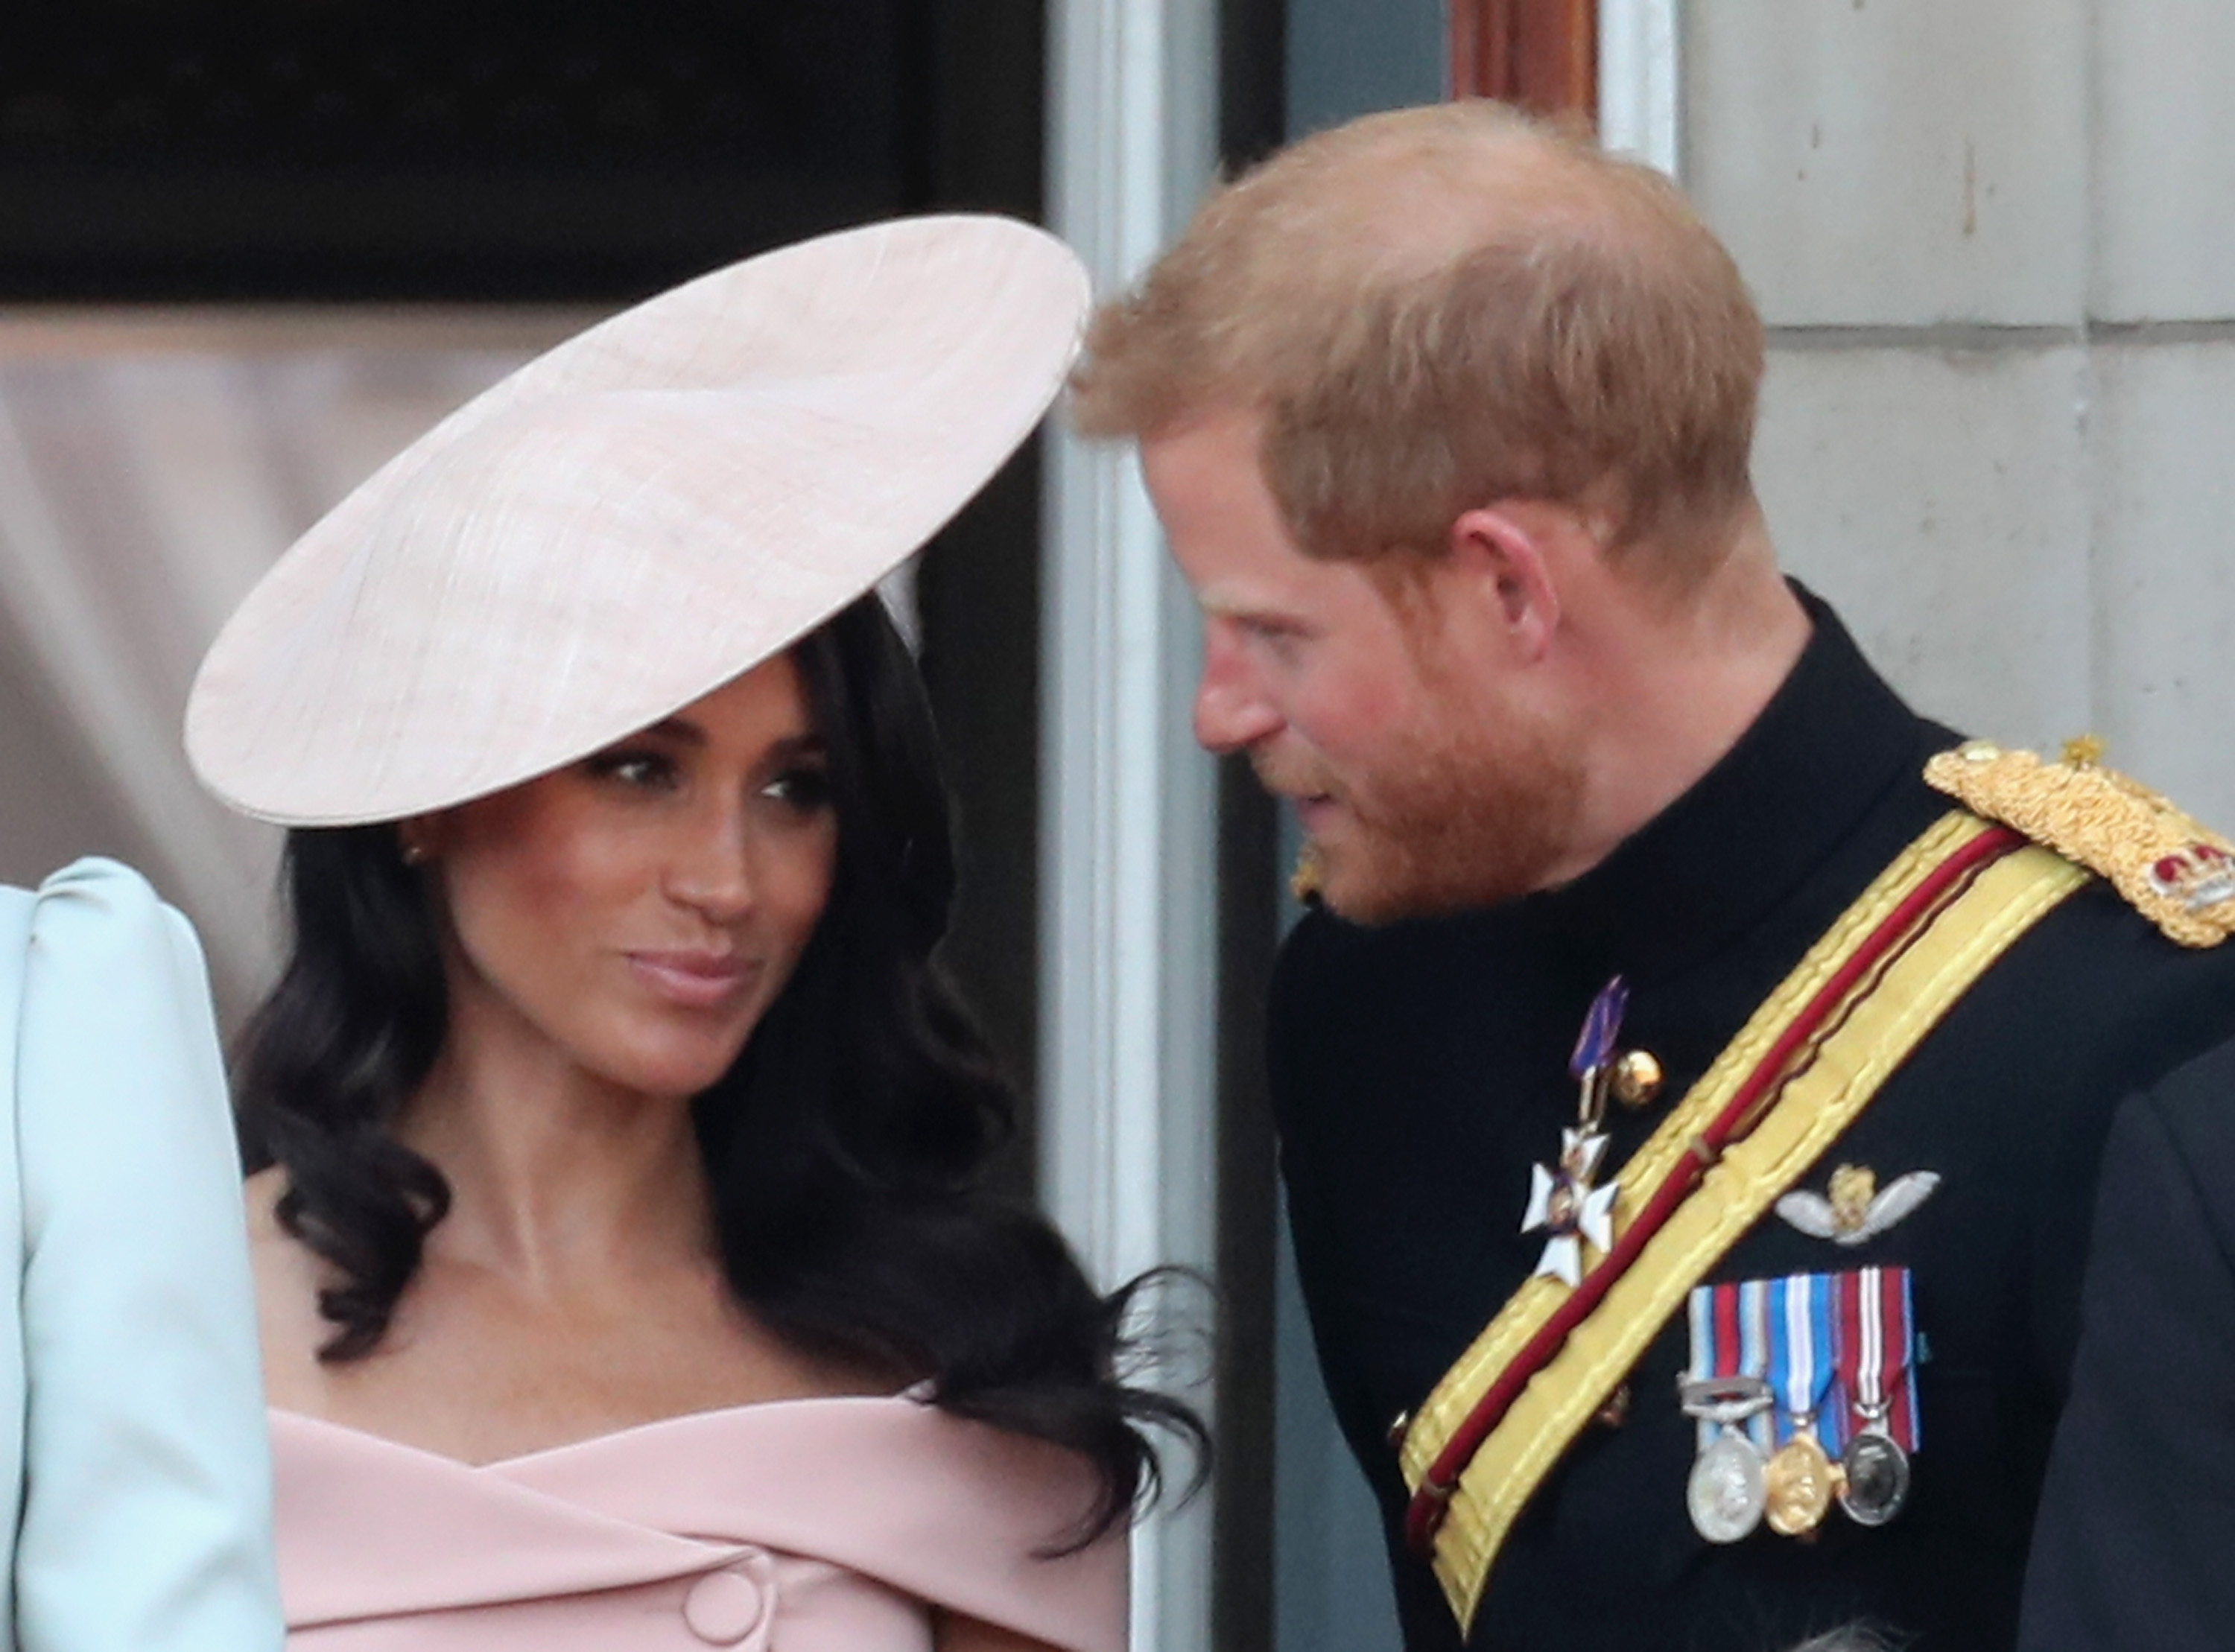 A Lip Reader Shares What Harry Said To Meghan In Their Post-Ceremony Carriage Ride